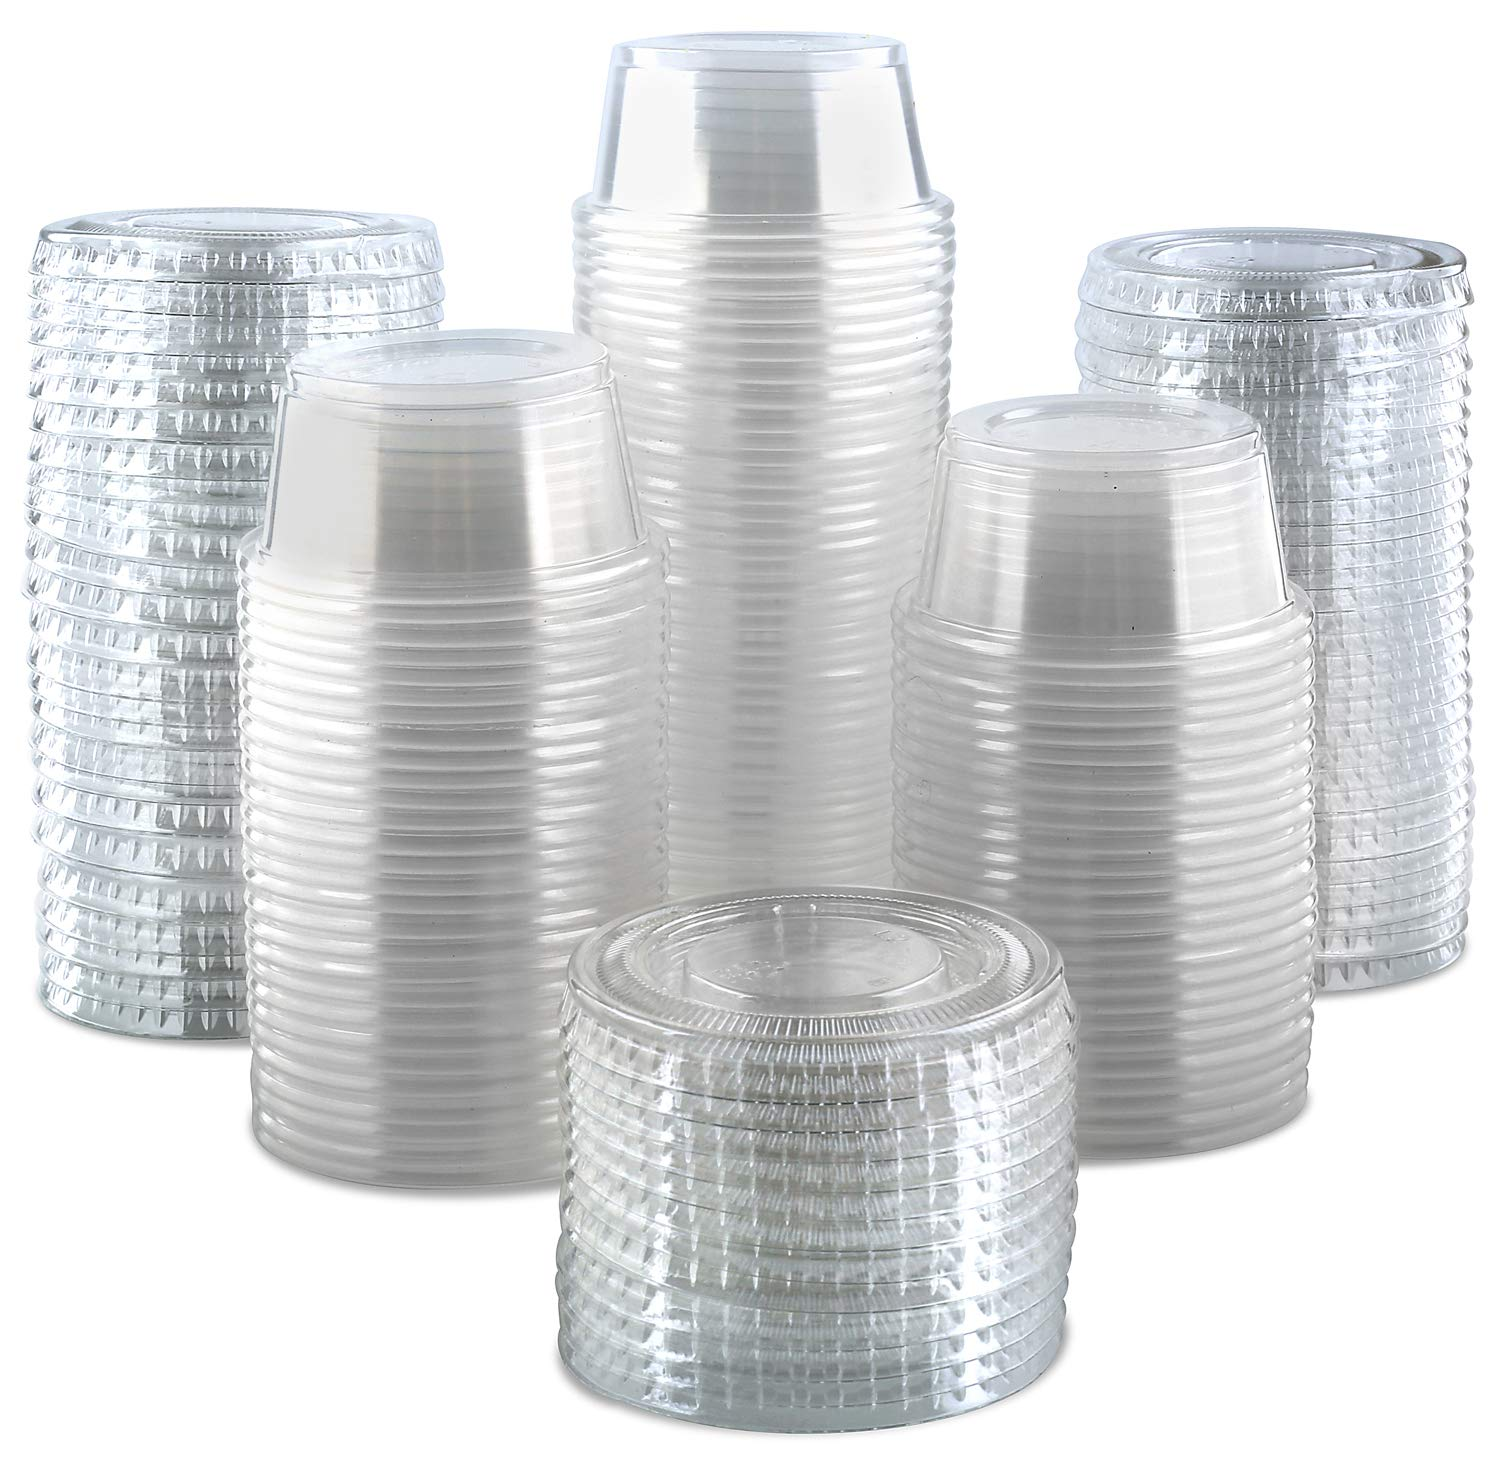 300-Pack Plastic Portion Control Cups with Snap-On Lids 2 oz. | Clear Disposable Small Food Containers | Excellent For Jello Shot, Meal Prep, Salad Dressing, Sushi, Condiments, Medicine, Sauce,Souffle (300, 2 OZ.) by PROMOZE